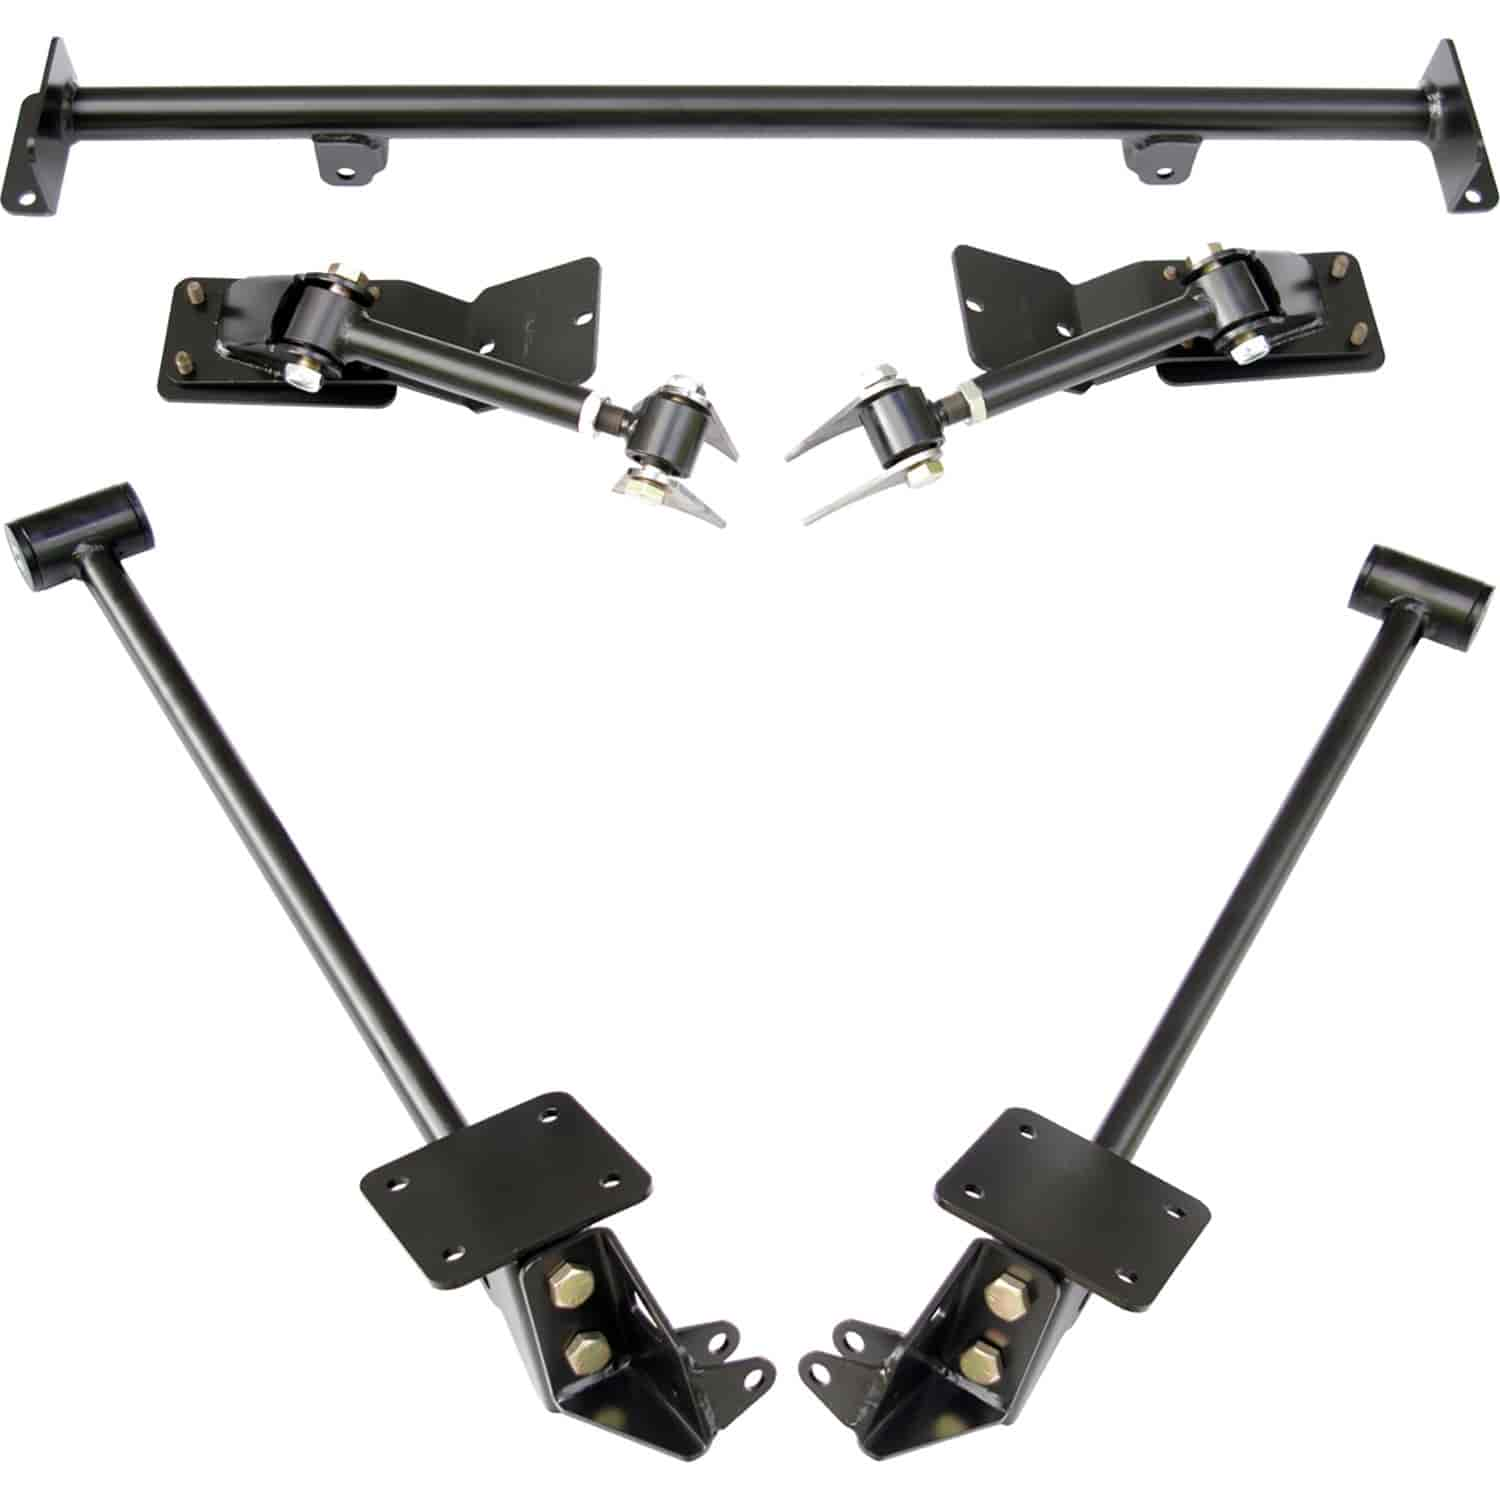 Ridetech 11257199 - RideTech AirBar 4-Link Rear Suspension System